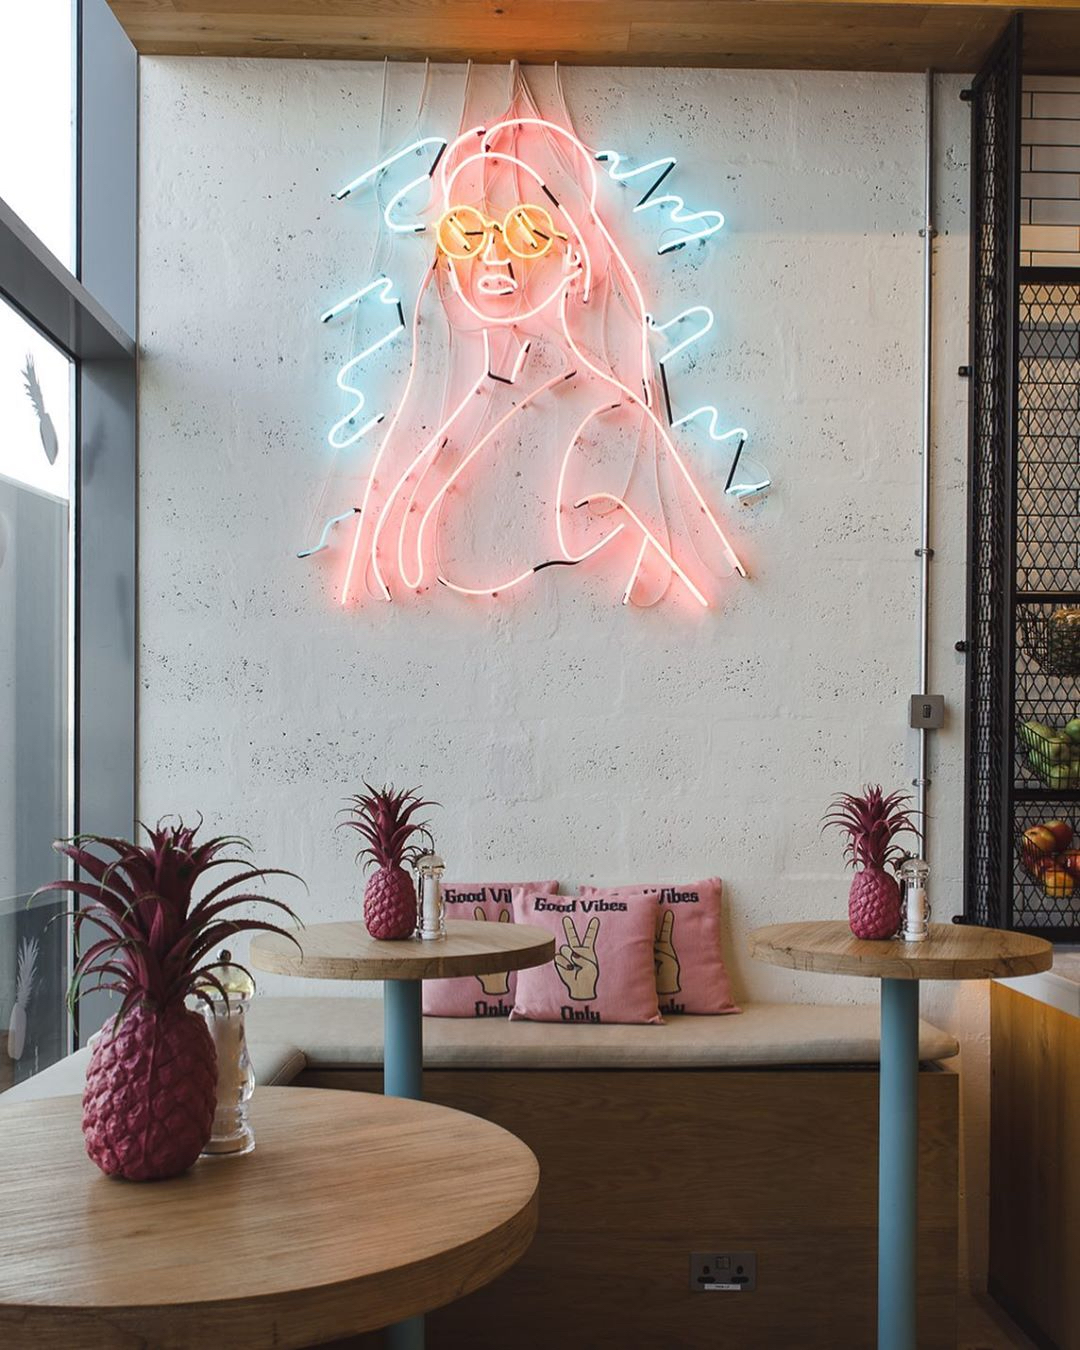 Girly cafes Dubai